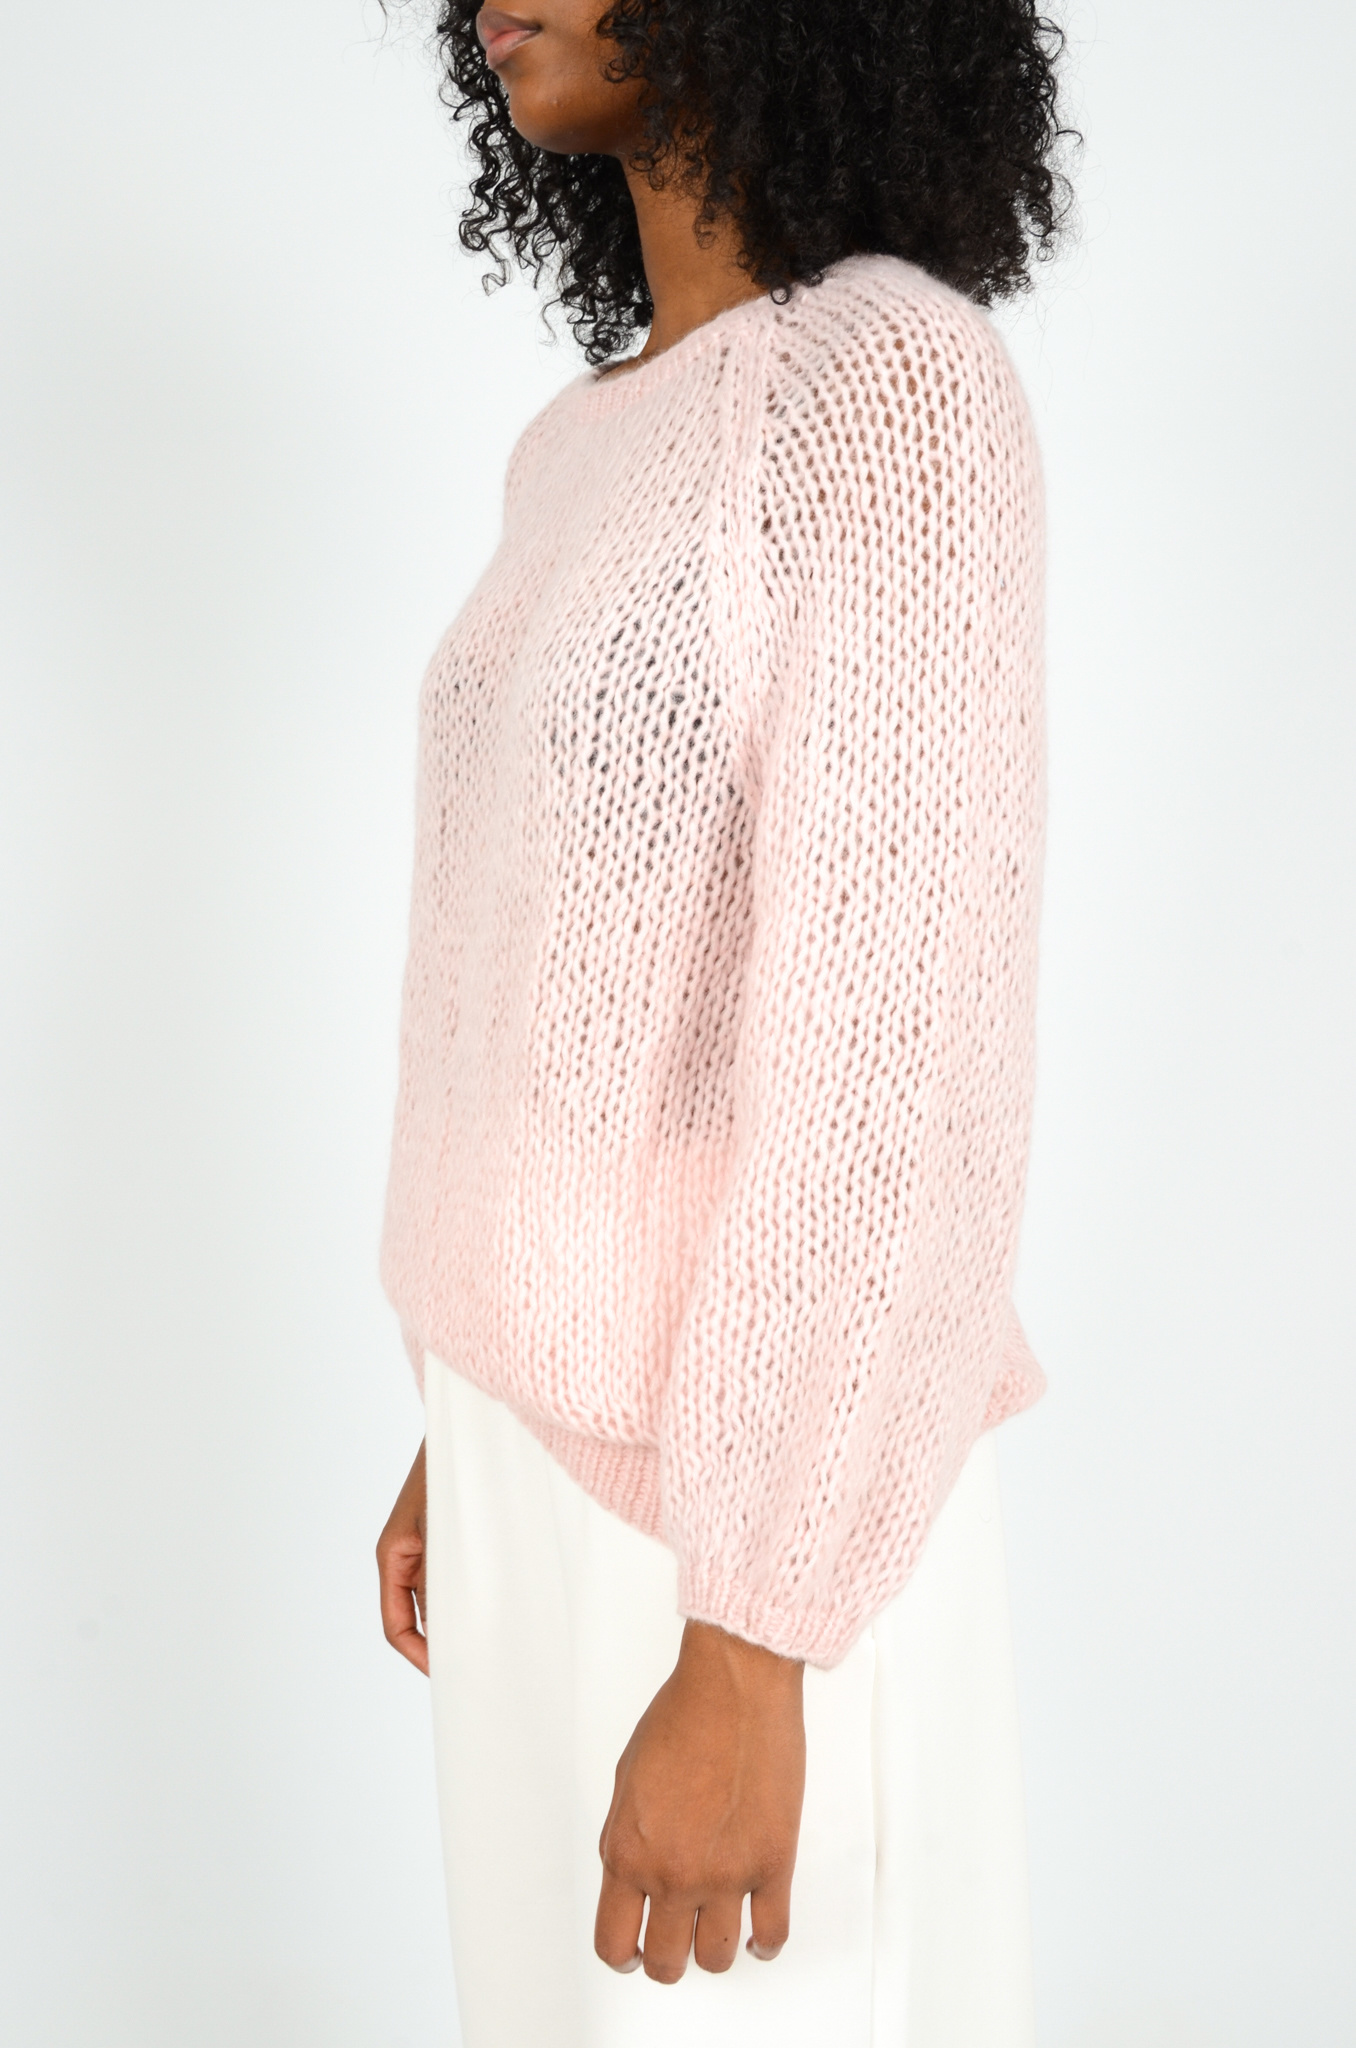 NAOMI SWEATER IN ROSA-2